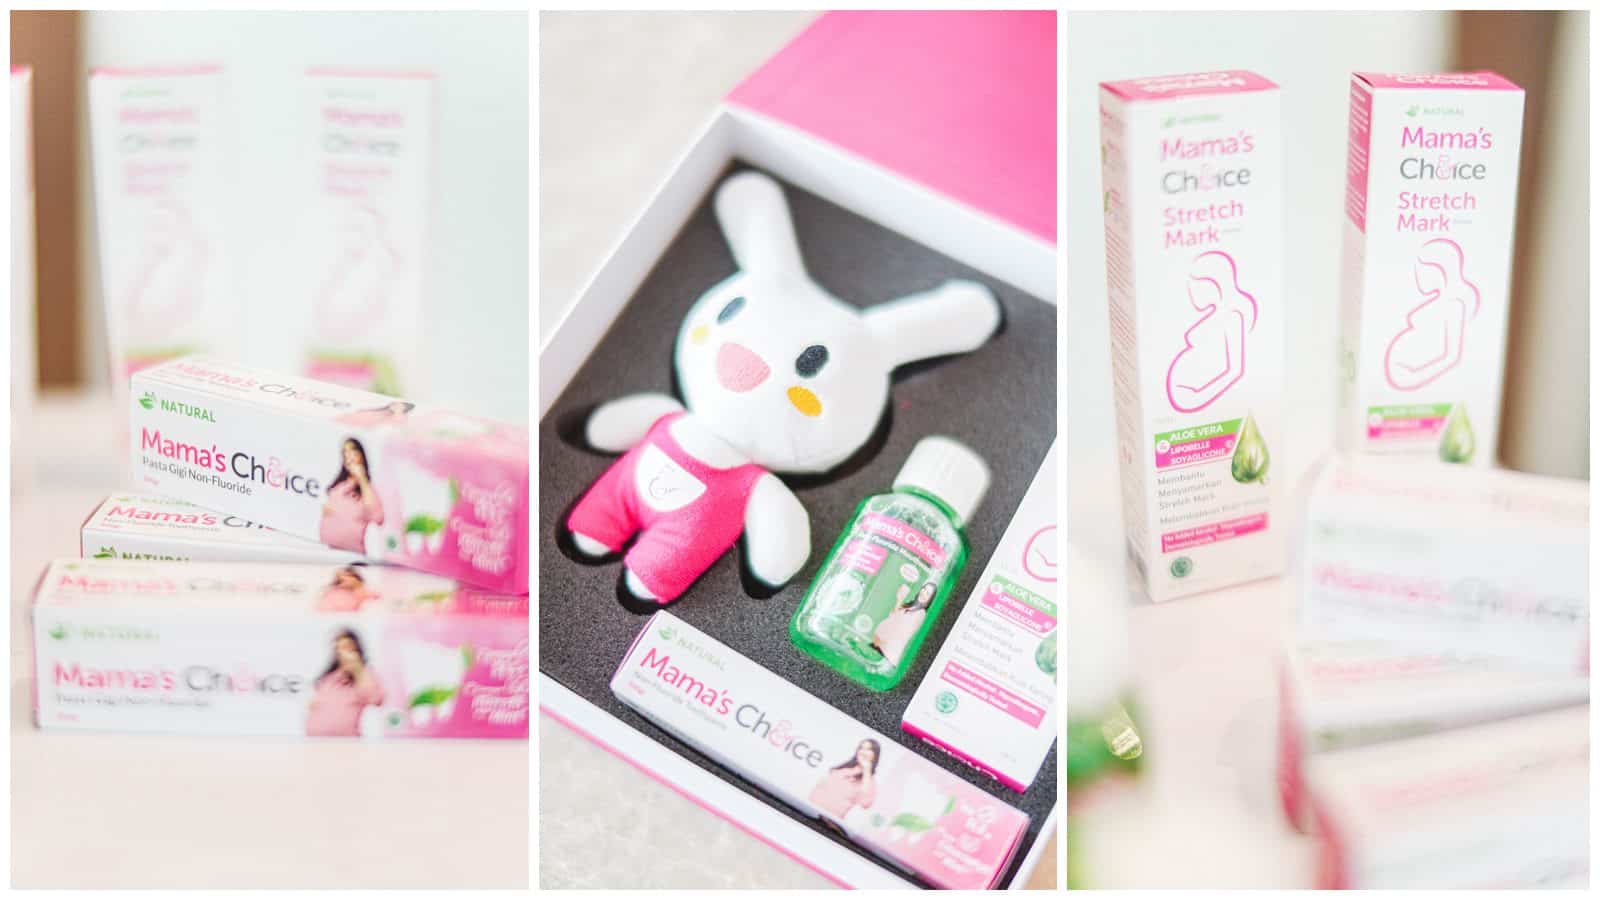 produk Mama's Choice